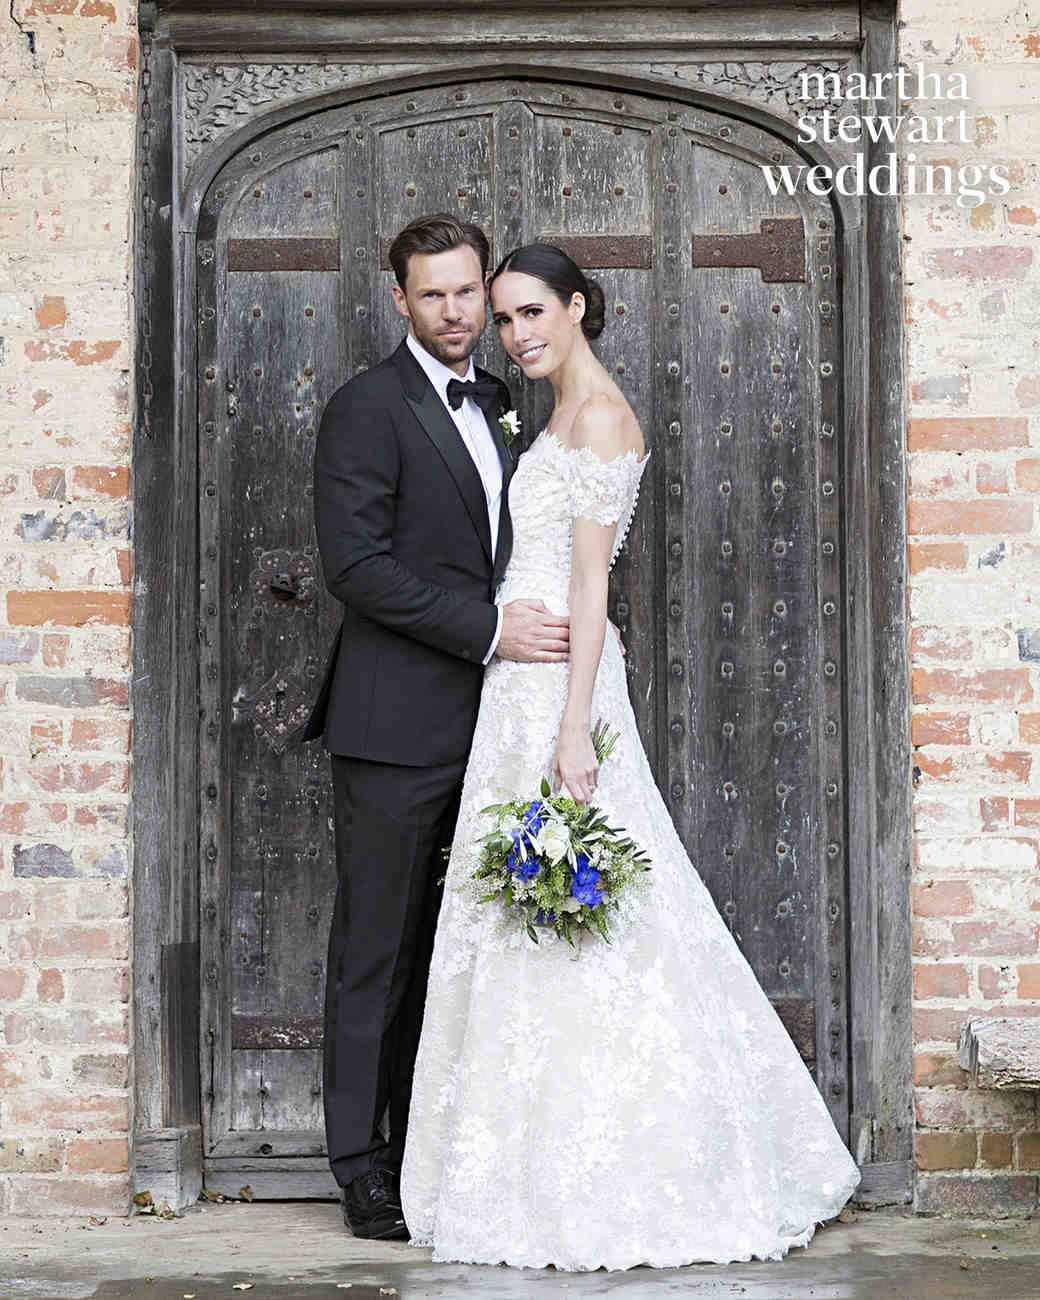 Exclusive Louise Roe And Mackenzie Hunkin S Wedding Photos Martha Stewart Weddings